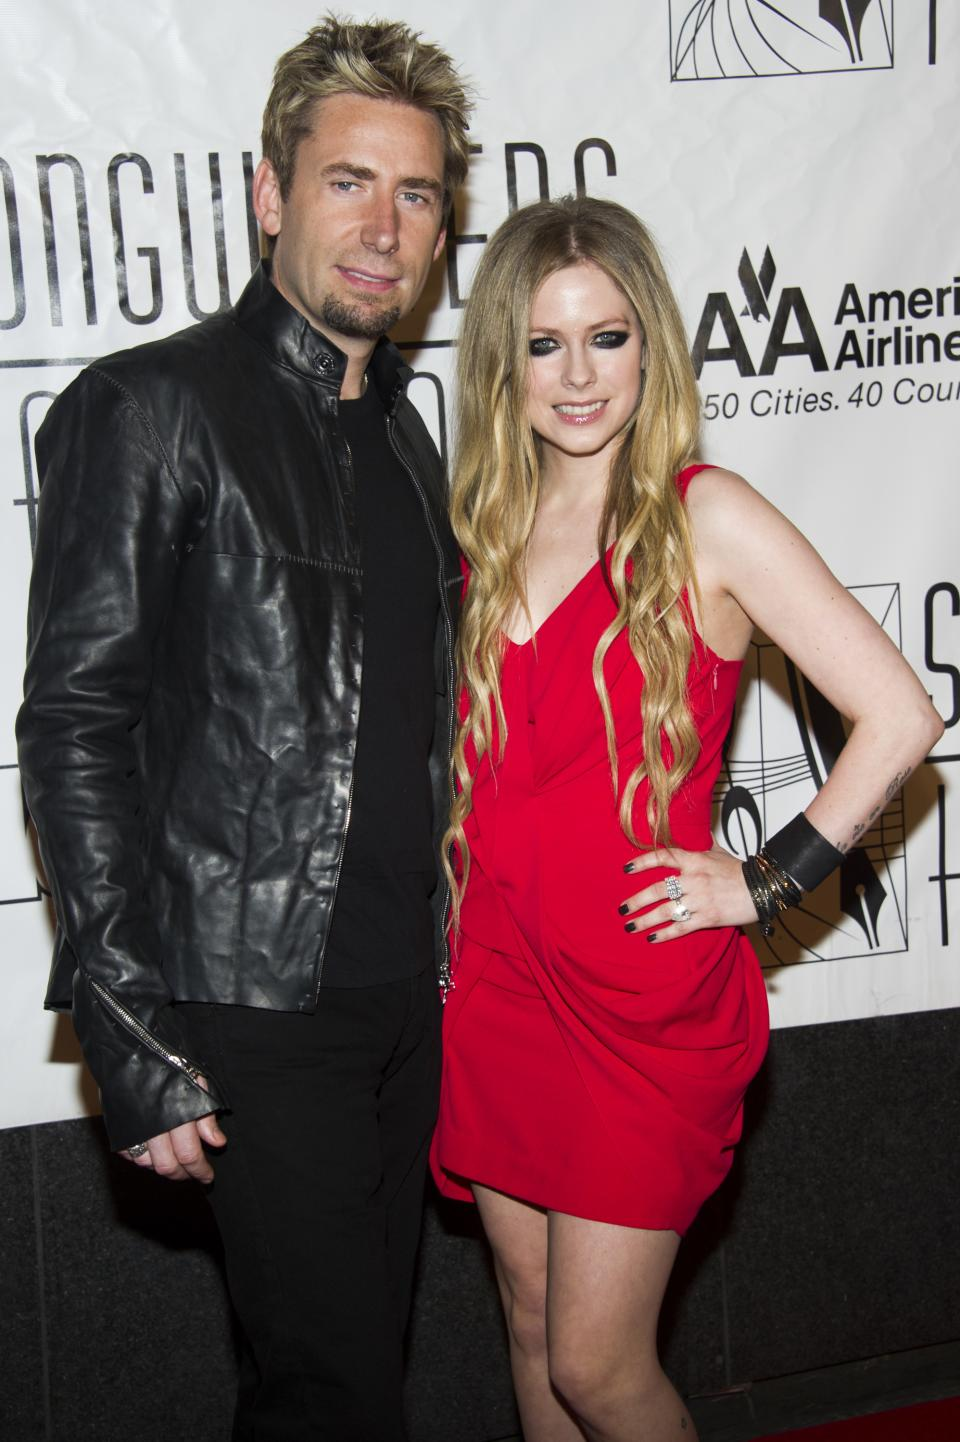 Chad Kroeger, left, and Avril Lavigne attend the Songwriters Hall of Fame 44th annual induction and awards gala on Thursday, June 13, 2013 in New York. (Photo by Charles Sykes/Invision/AP)